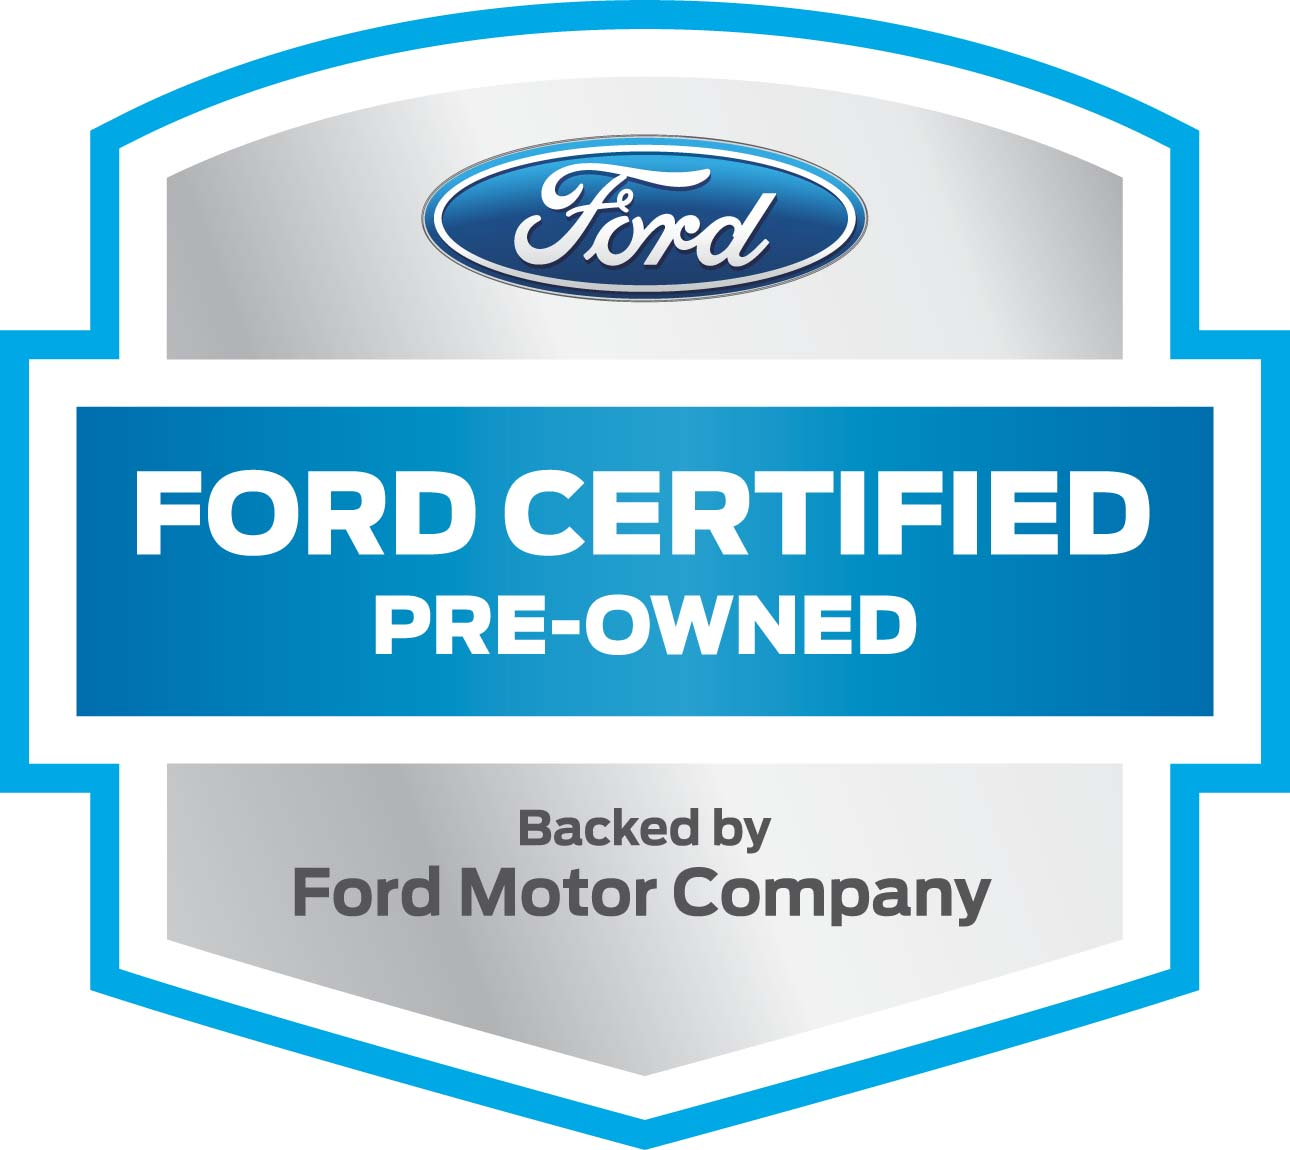 Ford Certified Ford Certified Pre Owned